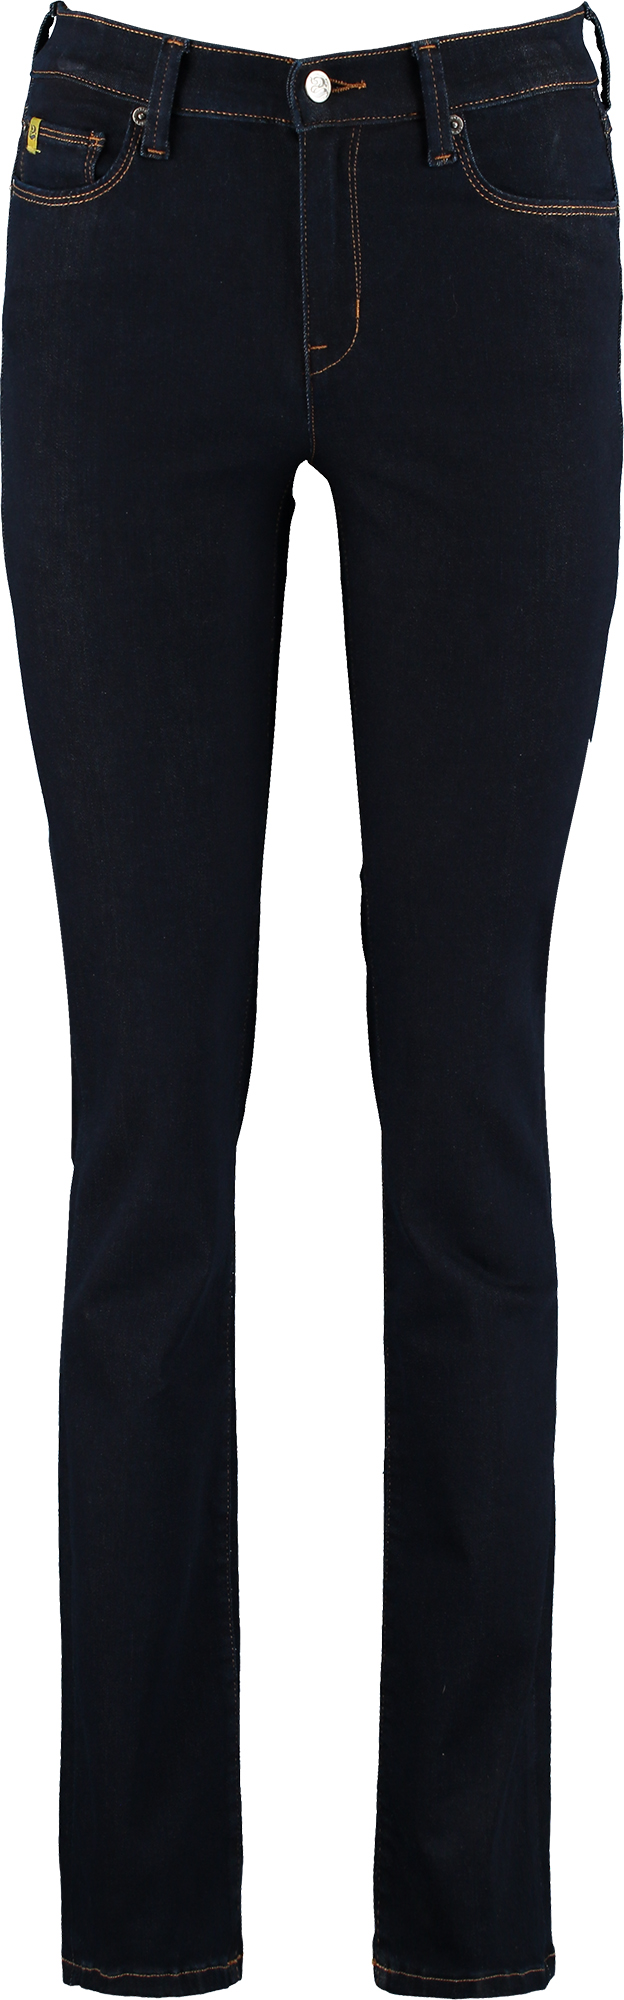 Piet Zoomers, Yoga Jeans dames